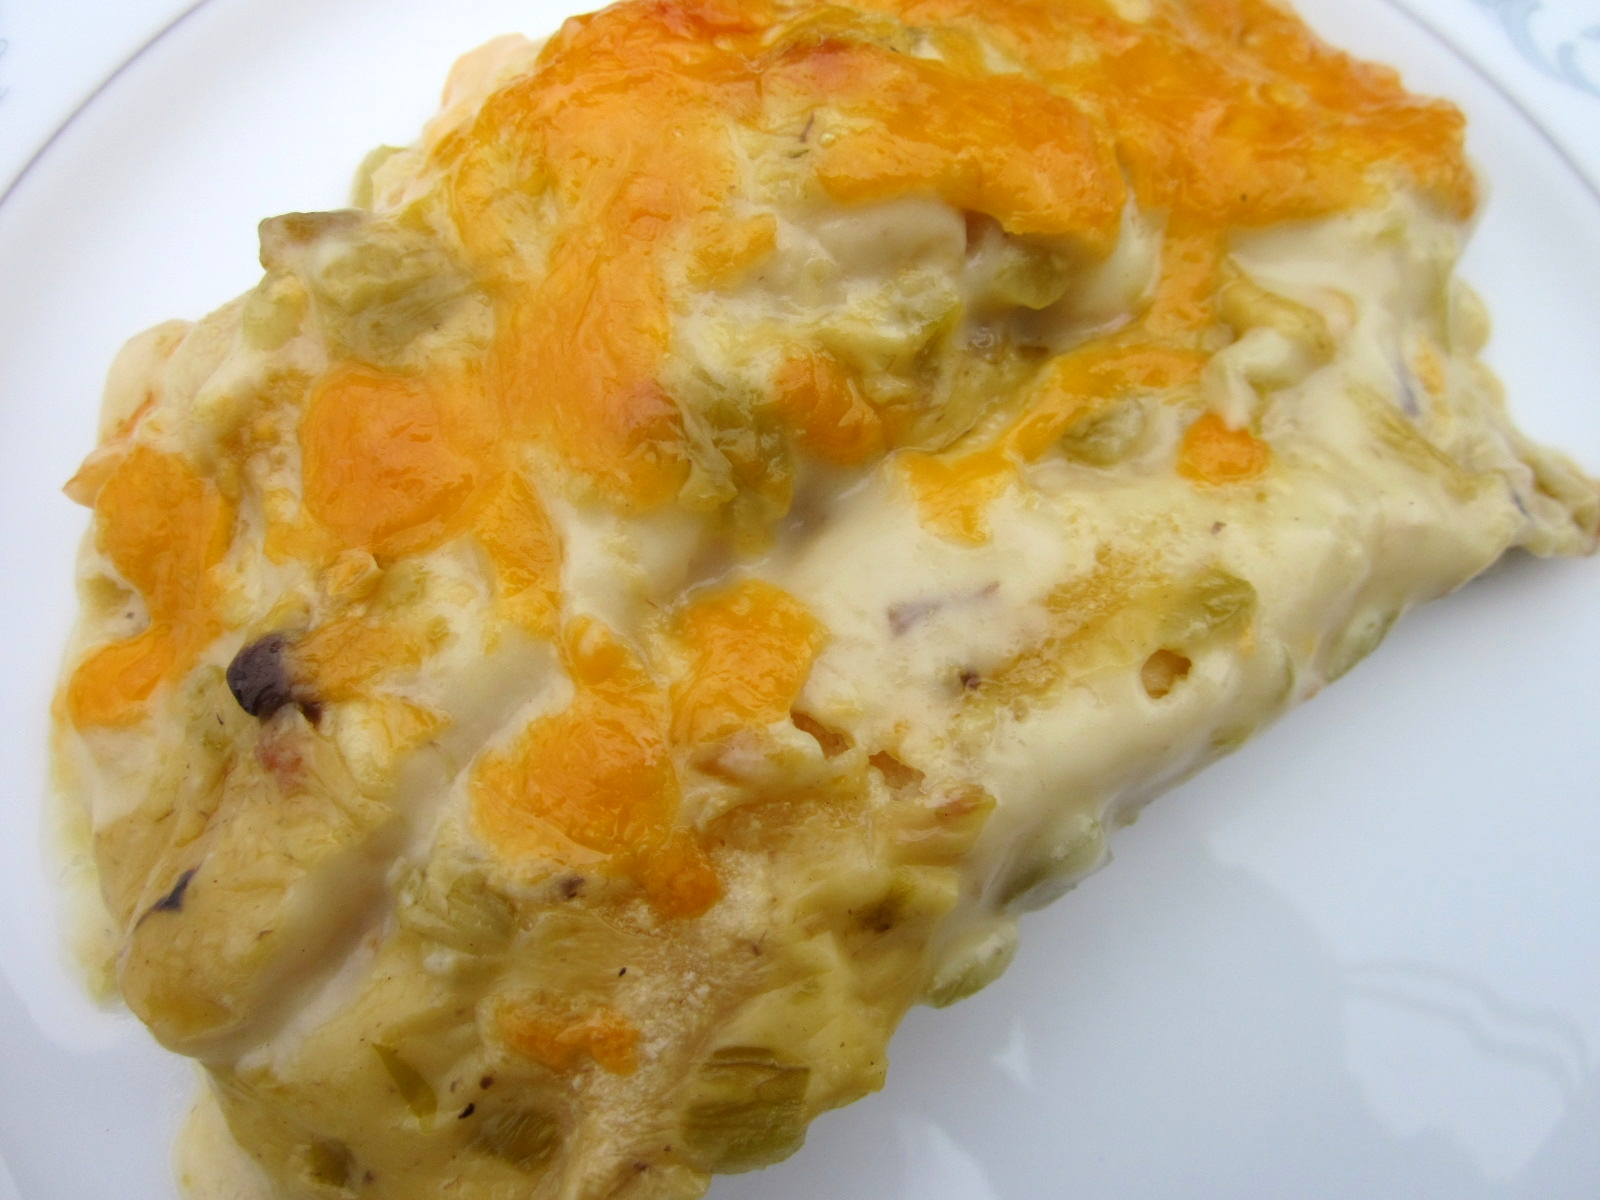 delightful country cookin': sour cream chicken enchiladas